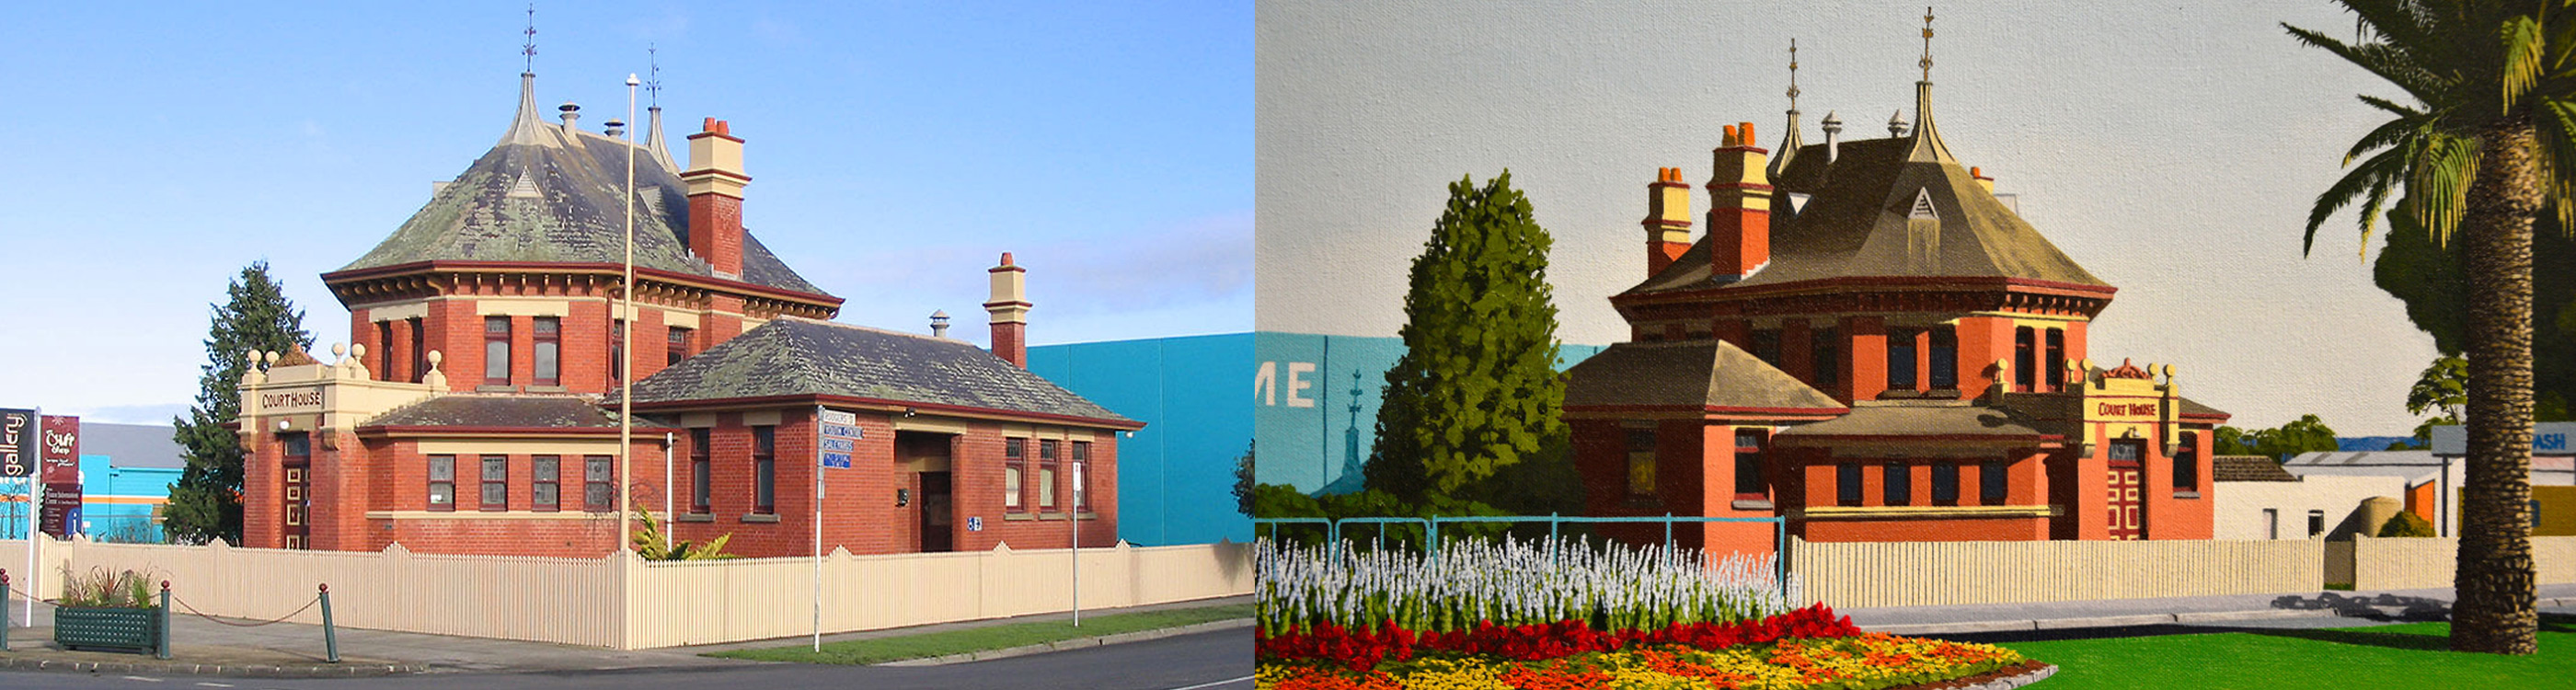 Photo and painting of the Courthouse Gallery in Yarram